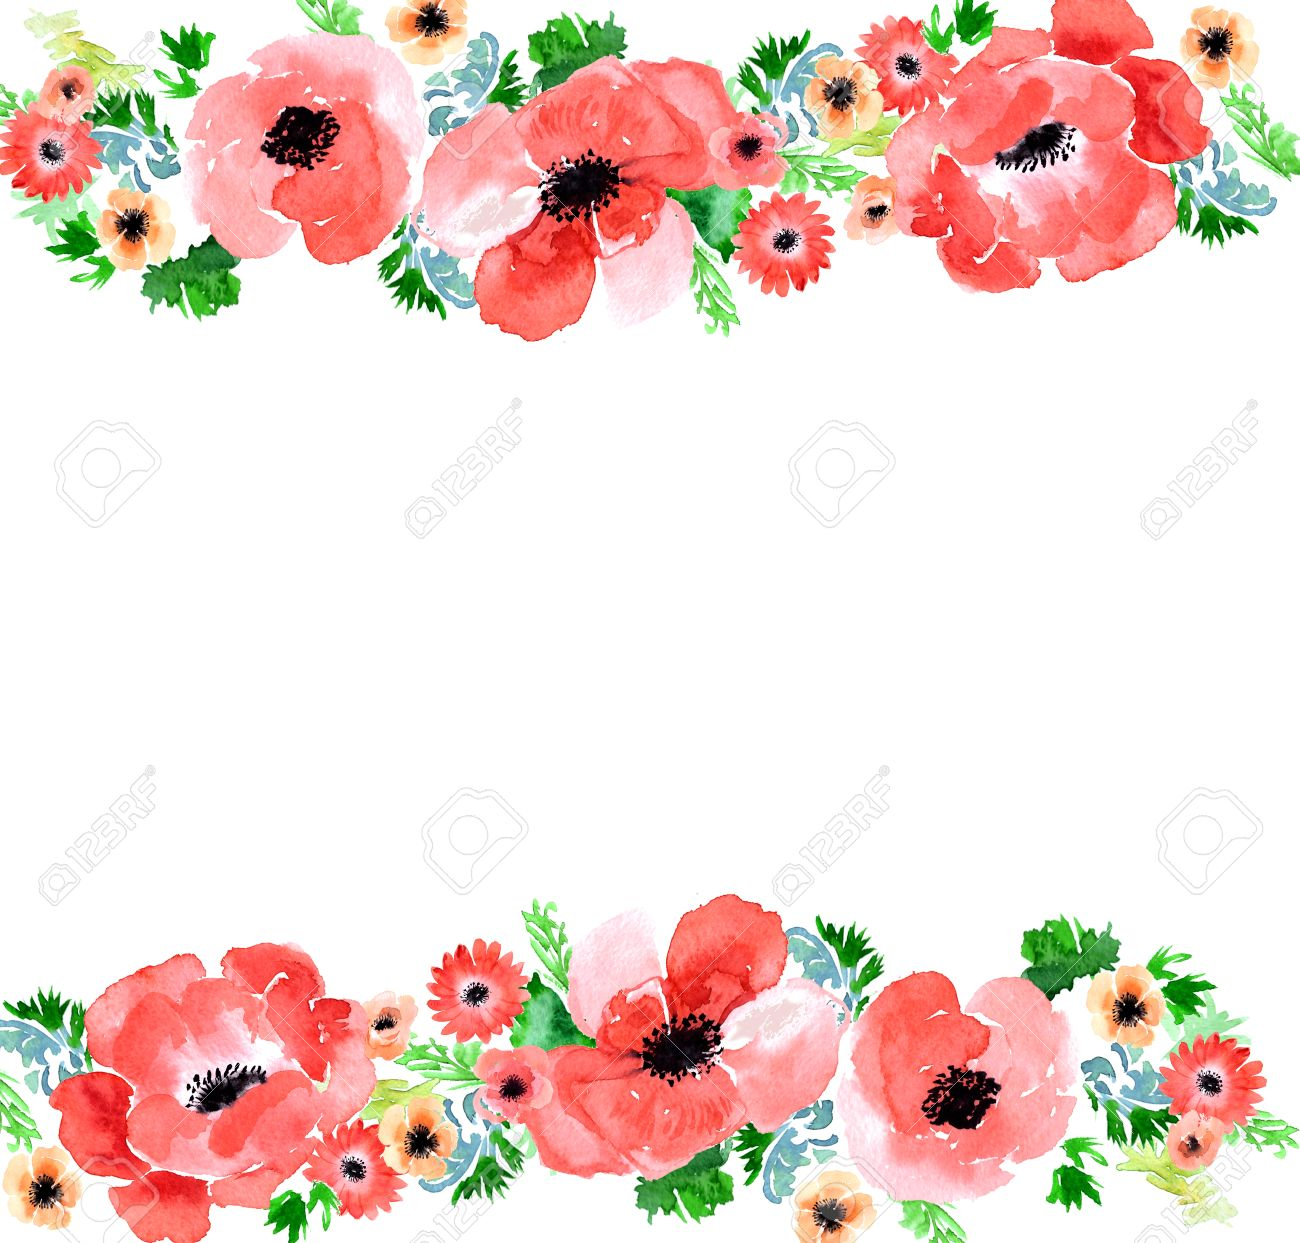 Floral Watercolor Background Anemone Garden Flowers Anemone Stock